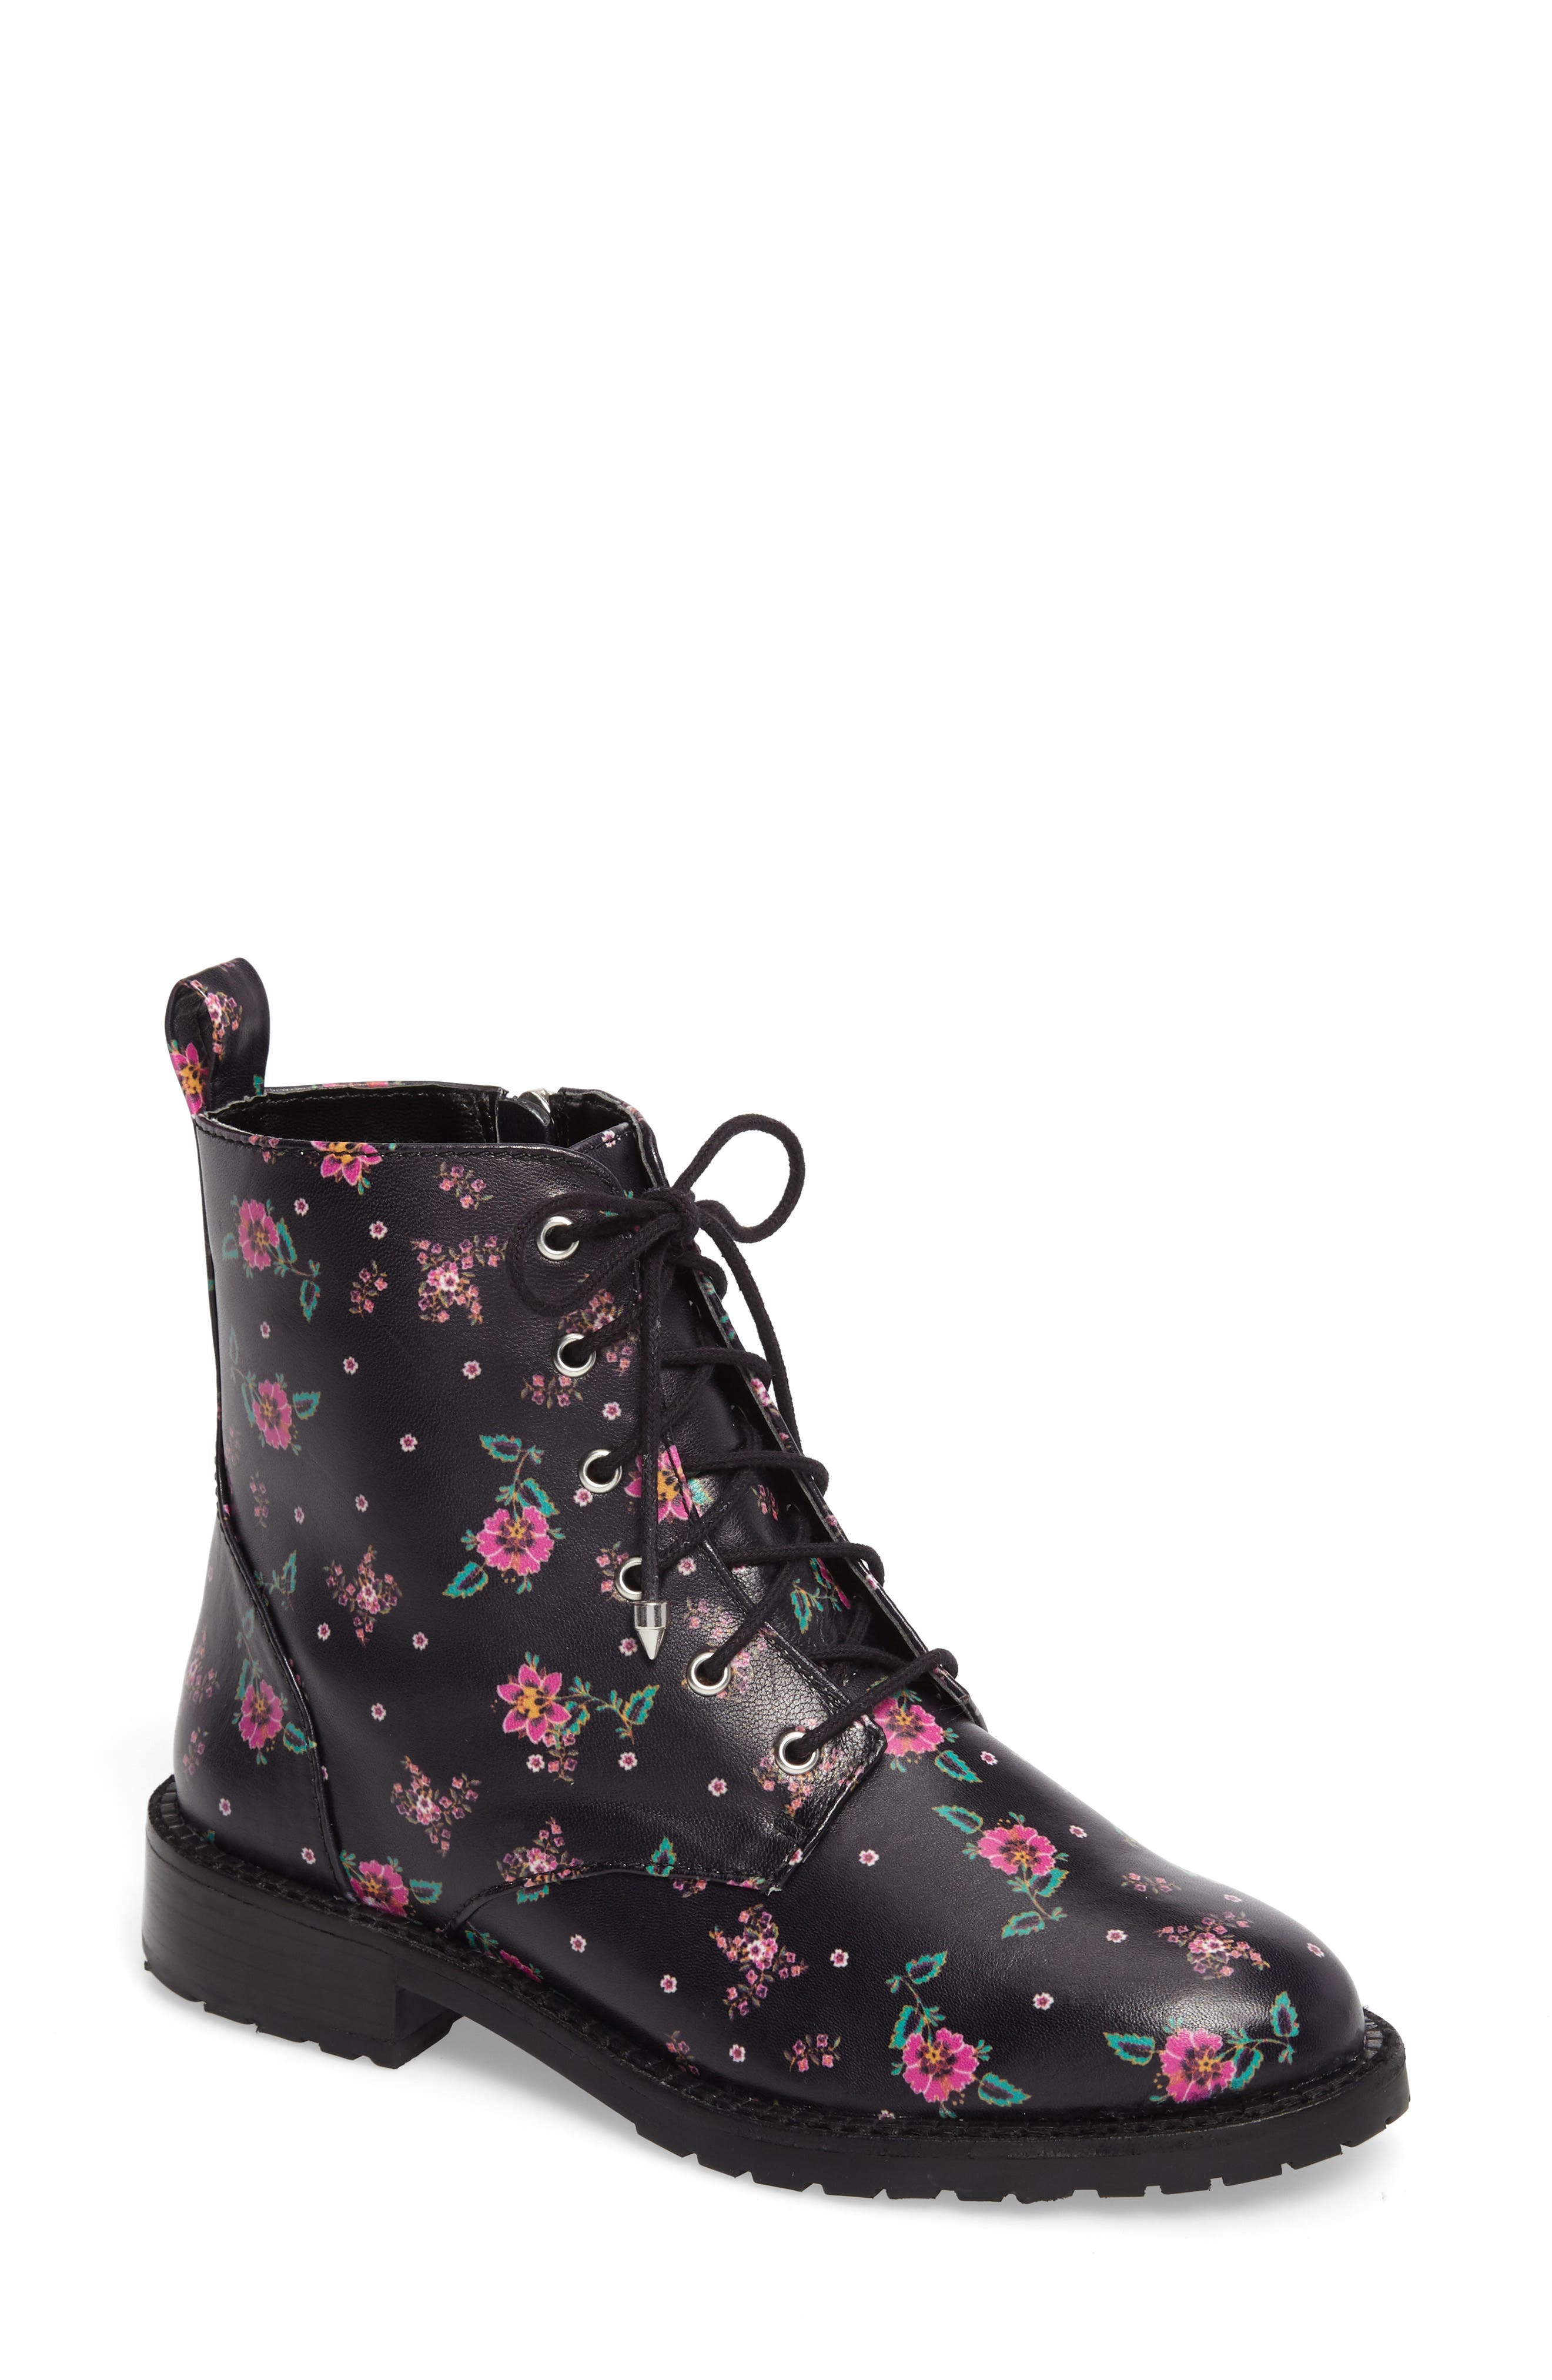 Gerry Lace-Up Boot,                         Main,                         color, Black Leather